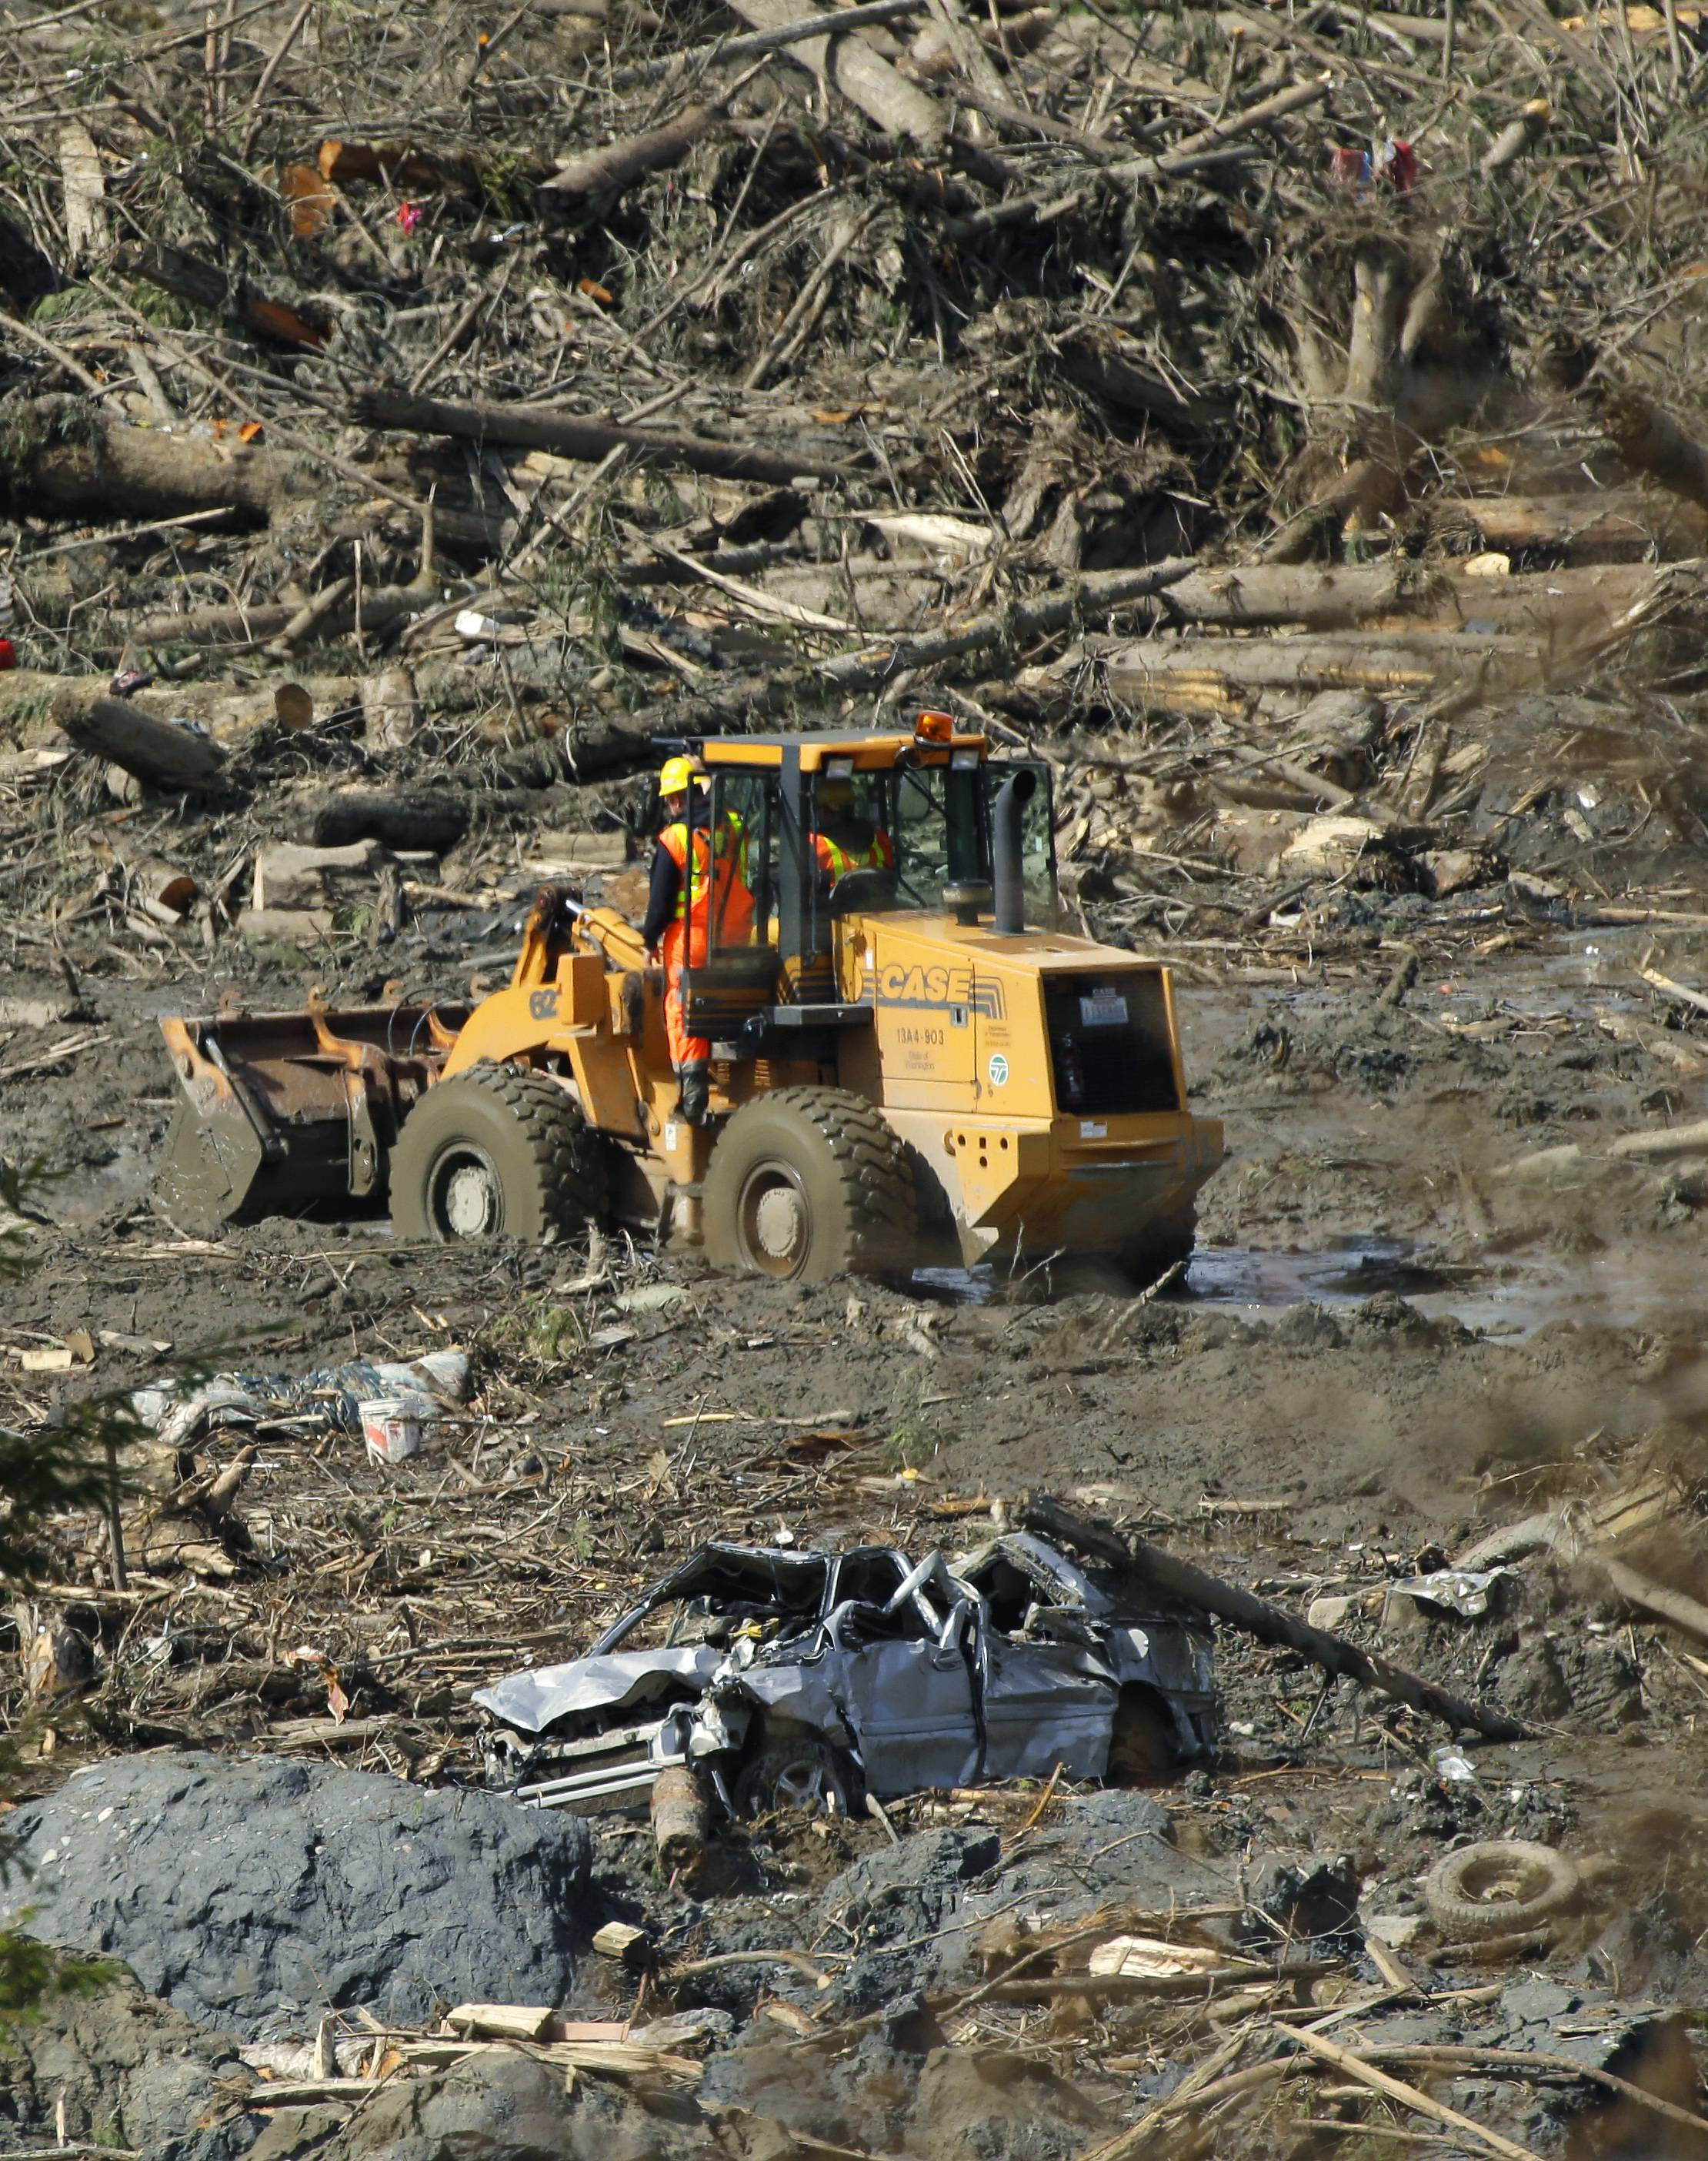 ASSOCIATED PRESS A front-end loader is driven past a wrecked car Monday near Darrington, Wash., in the debris field of the massive mudslide that hit the nearby community of Oso, Wash.